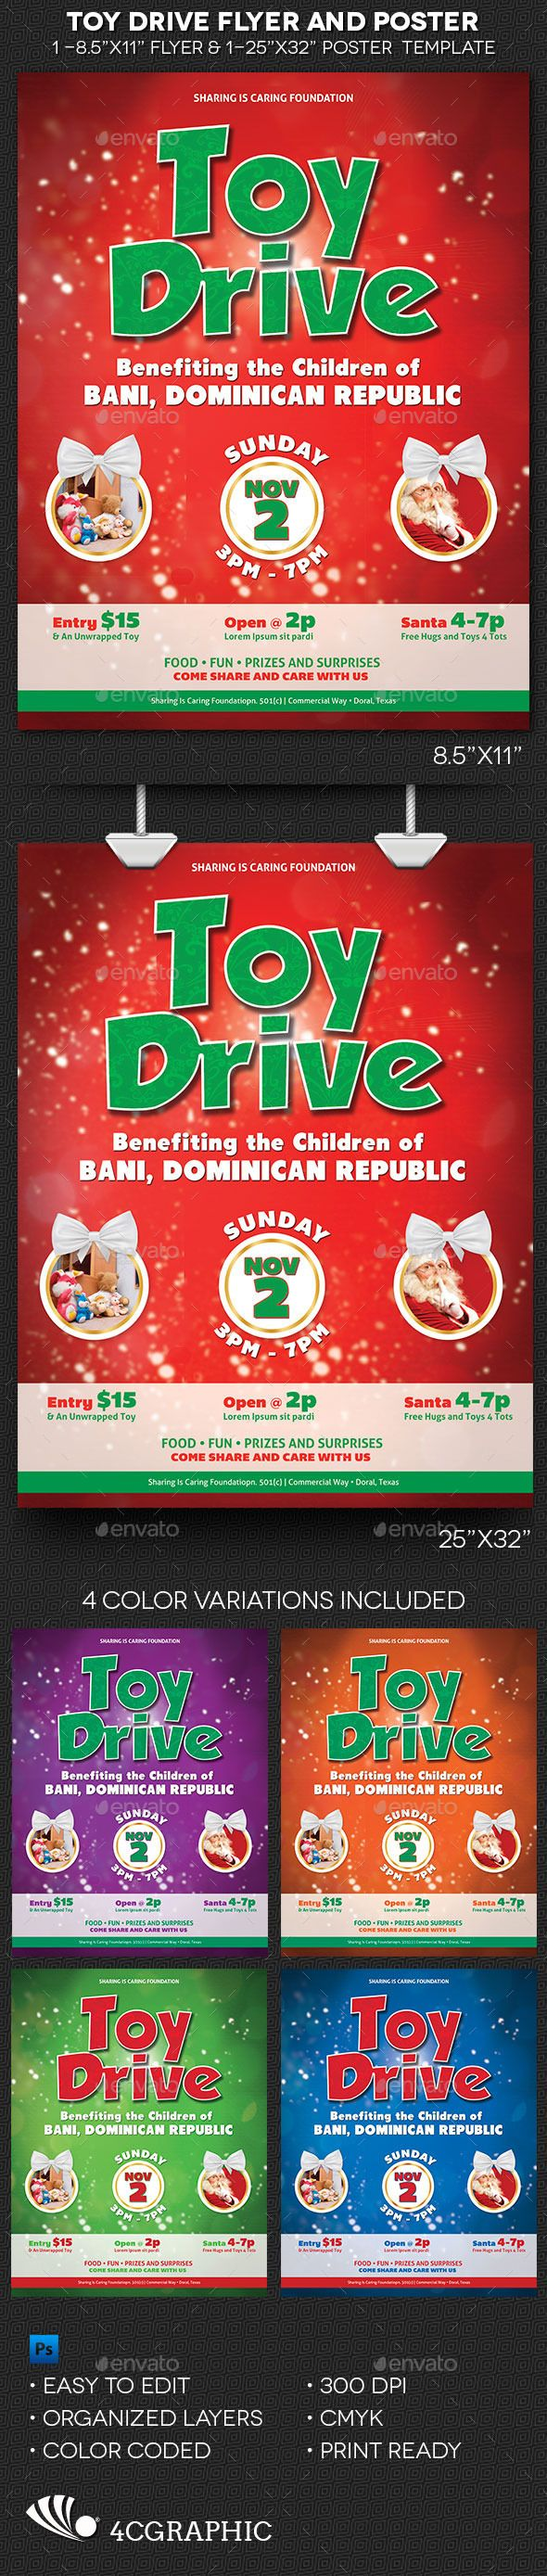 Printable Toys For Tots Logo : Toy drive flyer and poster template